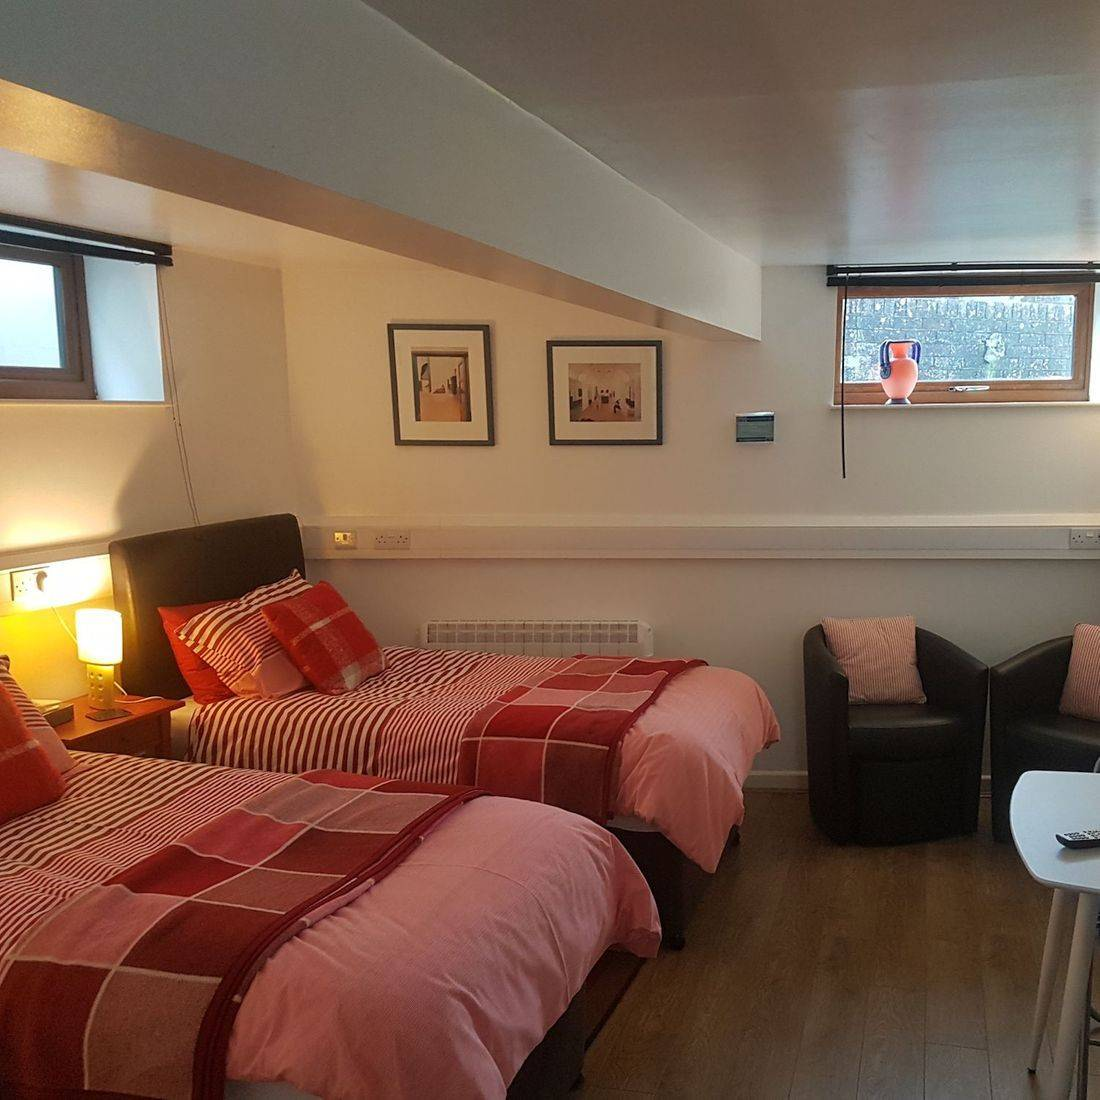 Studio self catering Bed and Breakfast in Lewes